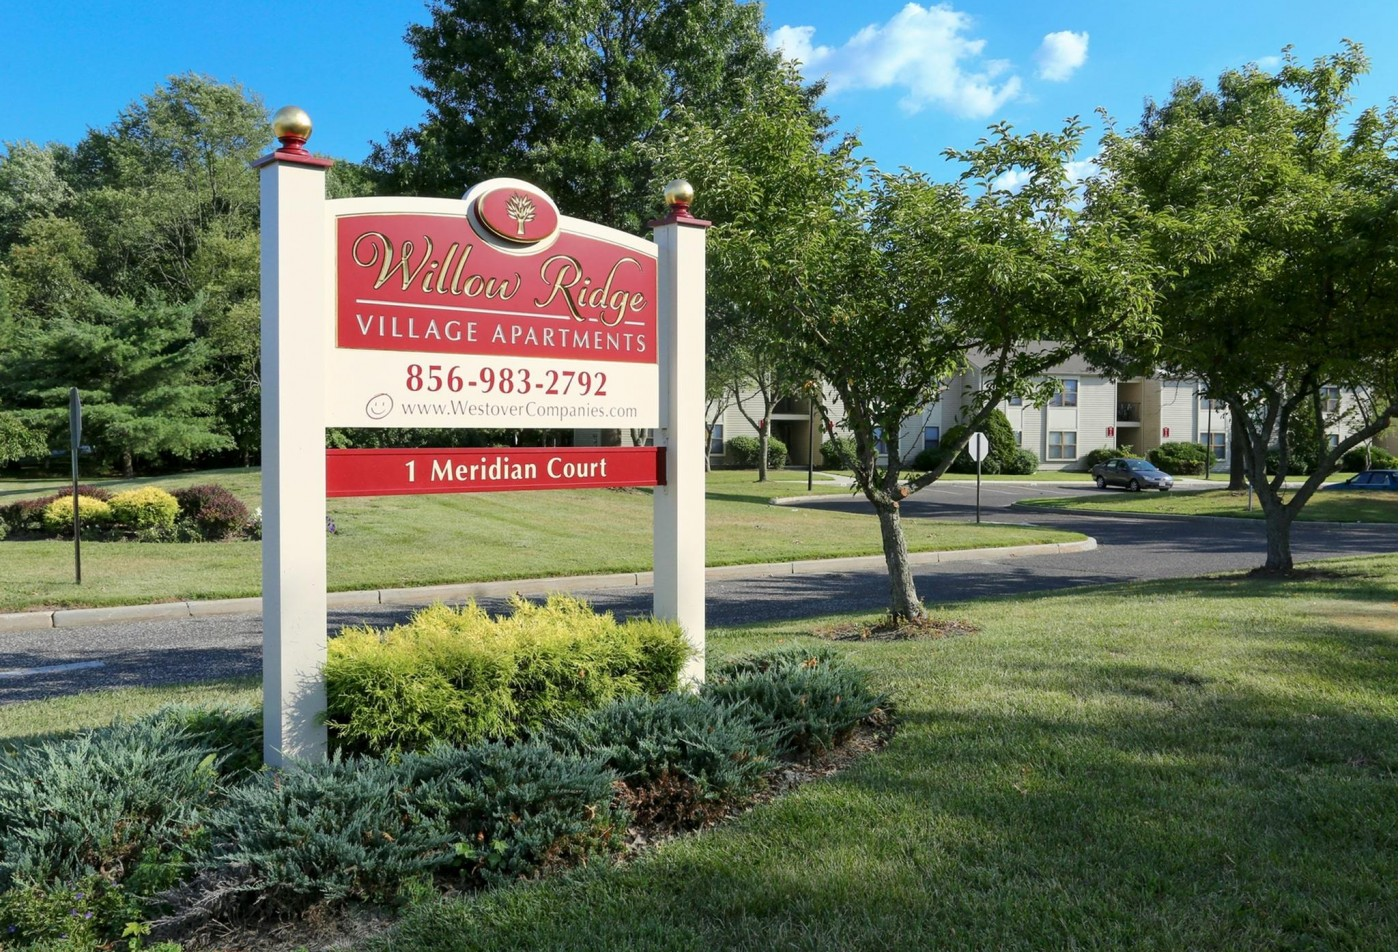 Apartments in Marlton, NJ | Willlow Ridge Village Apartments